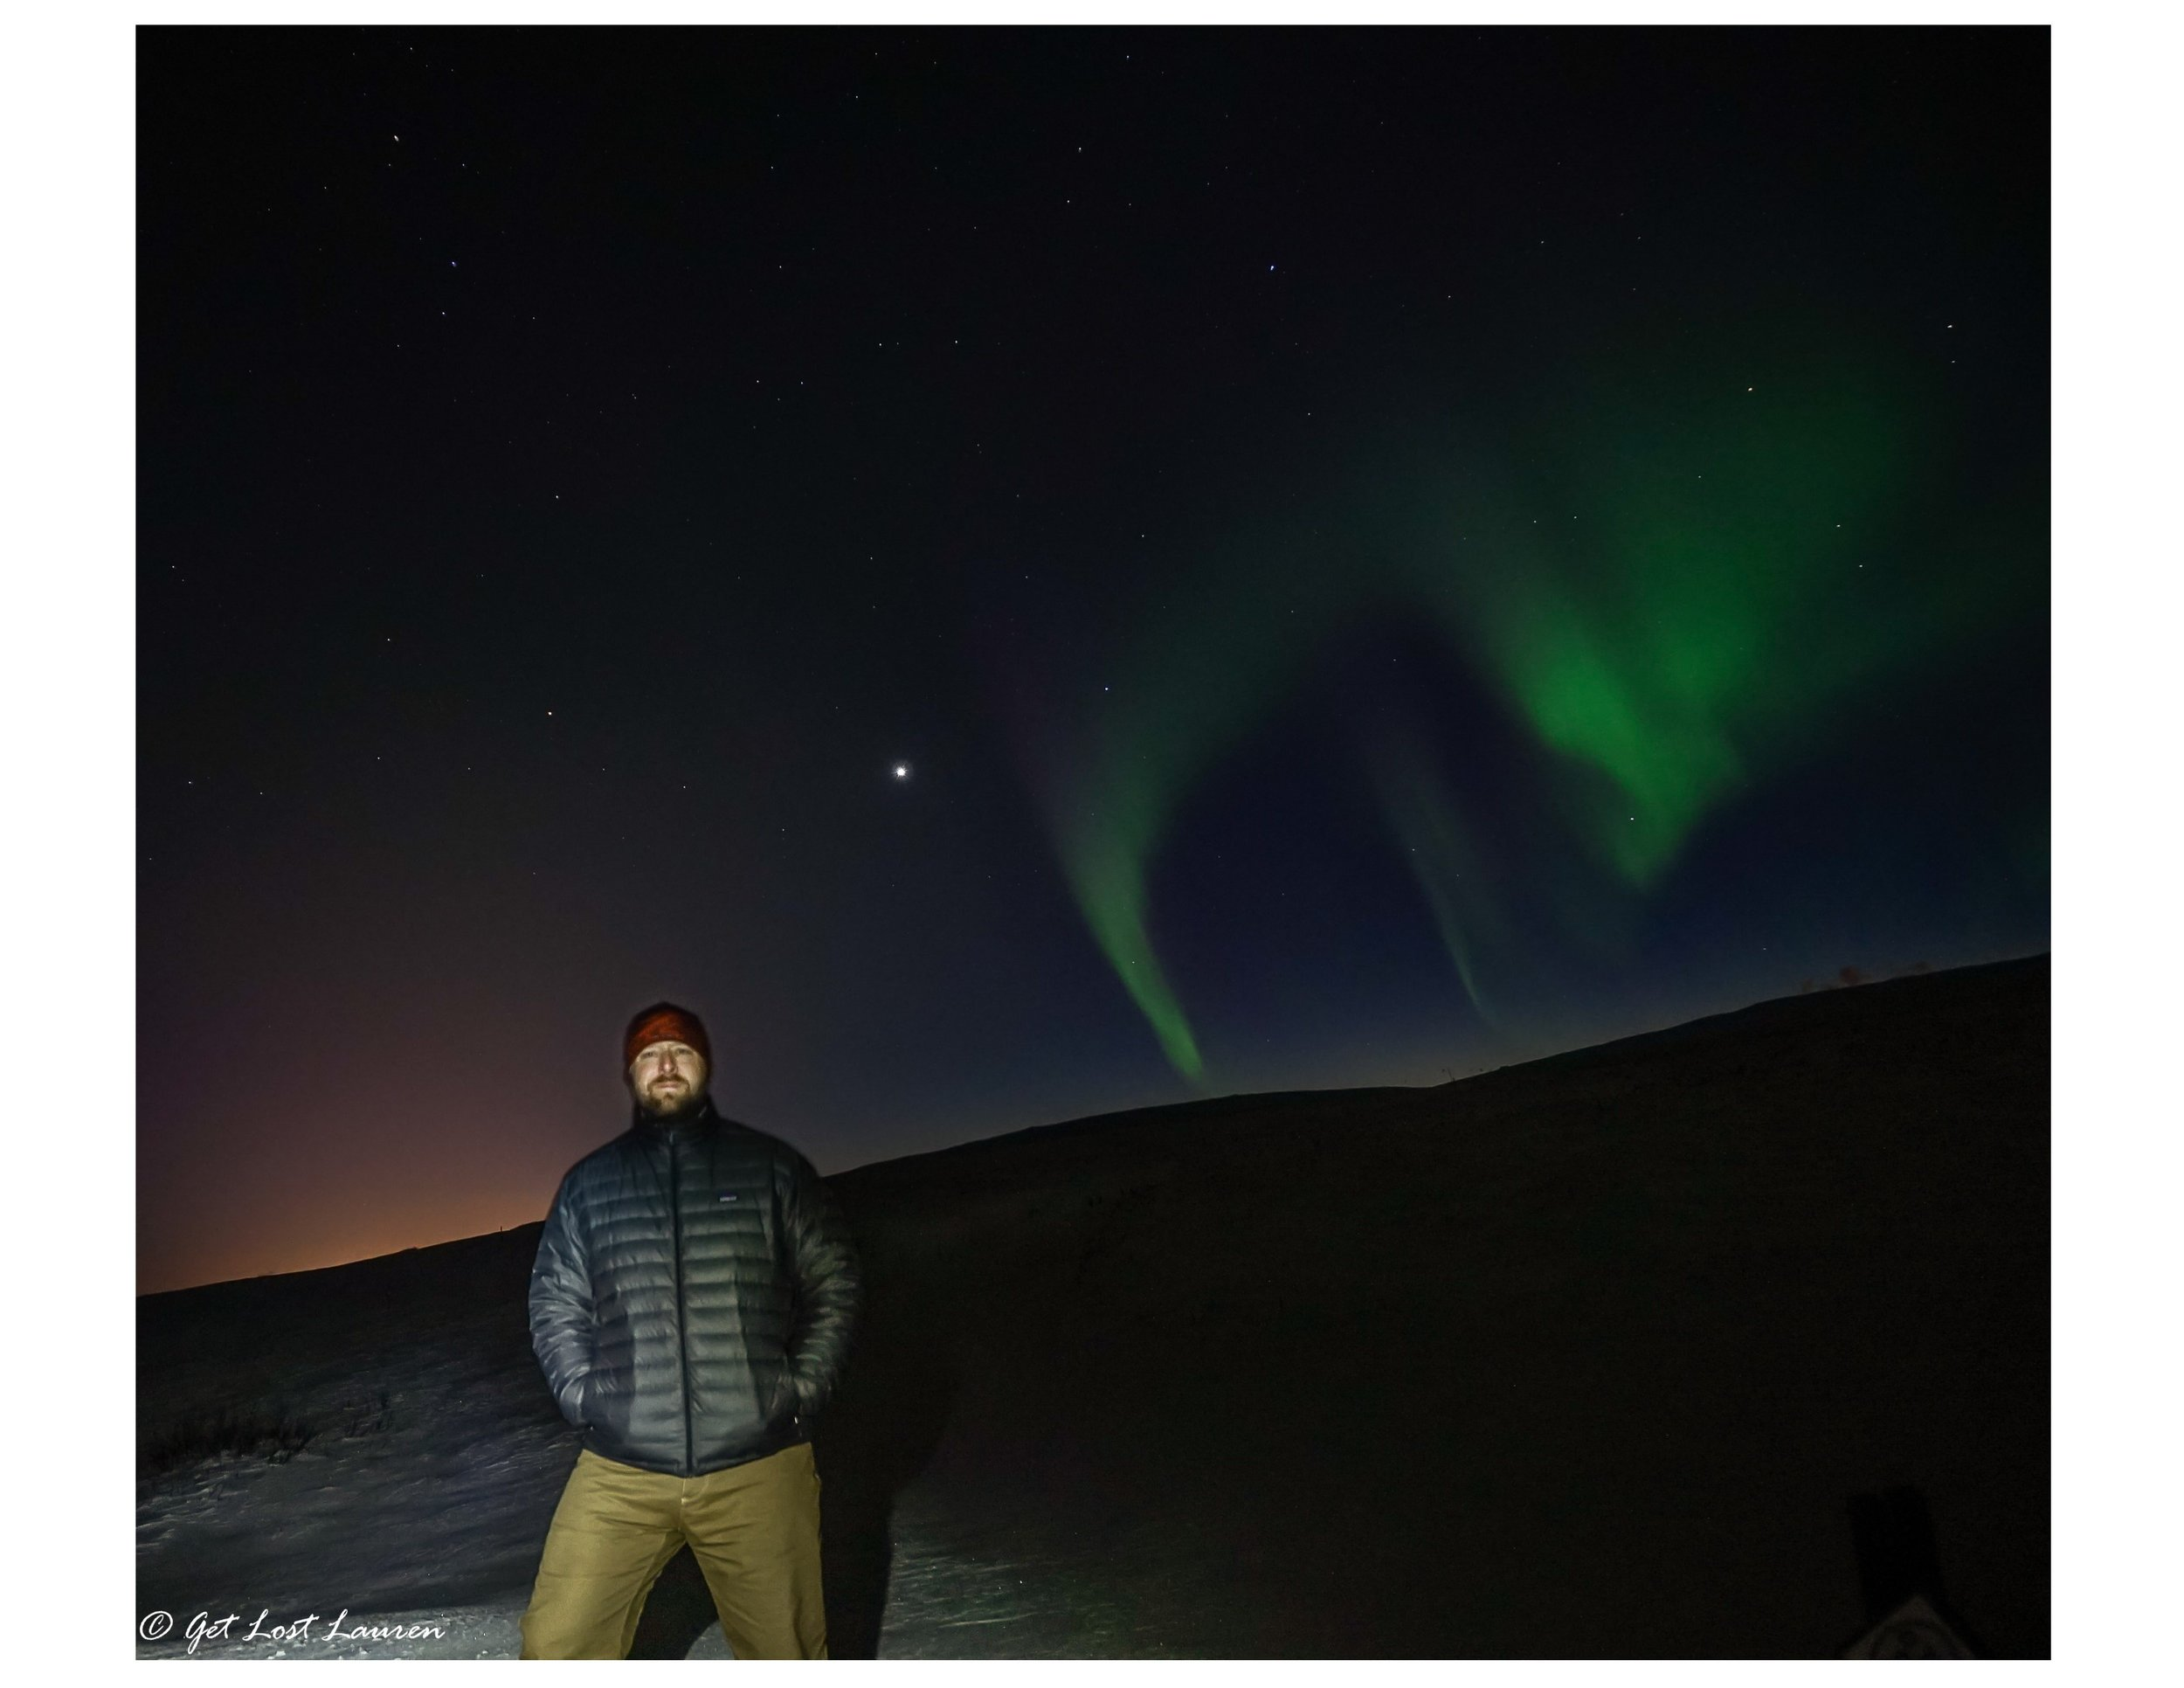 How to Capture the Northern Lights like a Pro